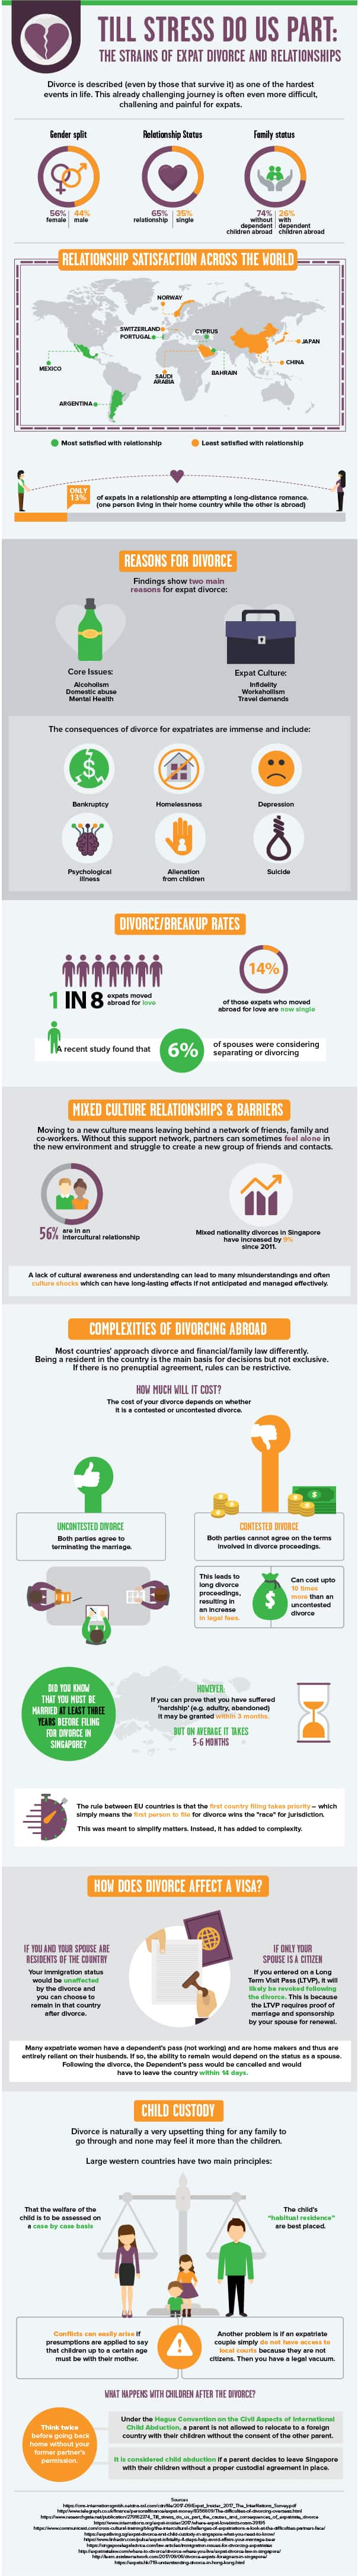 Expat Marriage - InfoGraphic NakedRecoveryOnline